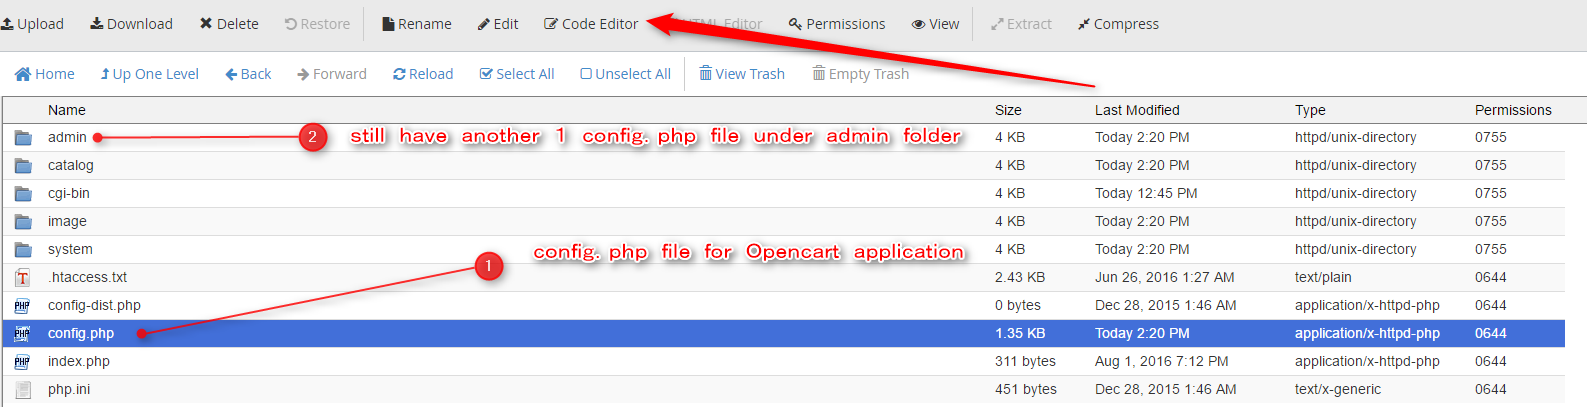 How to force Opencart to work with HTTPS : Exabytes com (US & Global